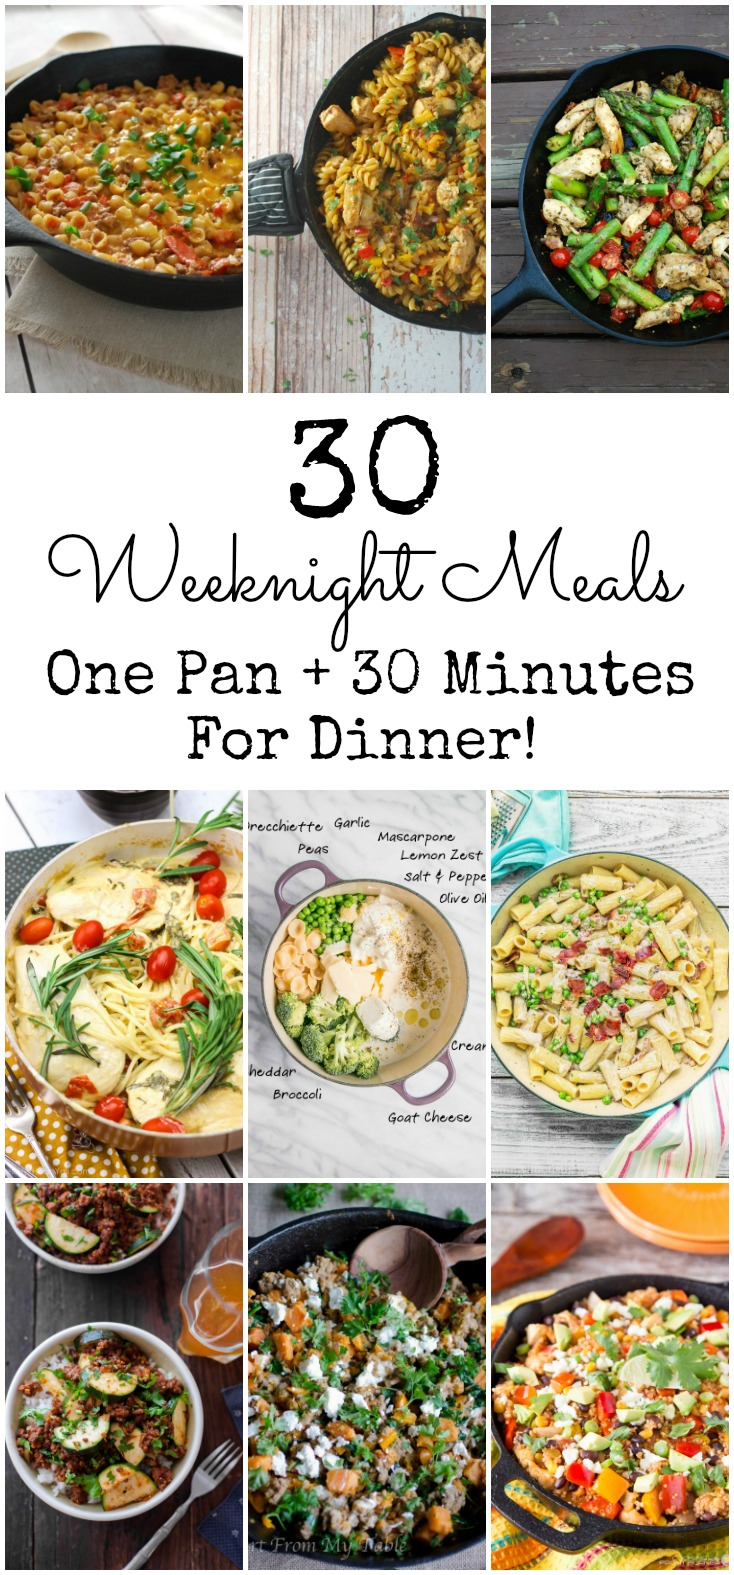 Need dinner inspiration? Here are 30 awesome meals that take one pan and 30 minutes! No funky ingredients! 